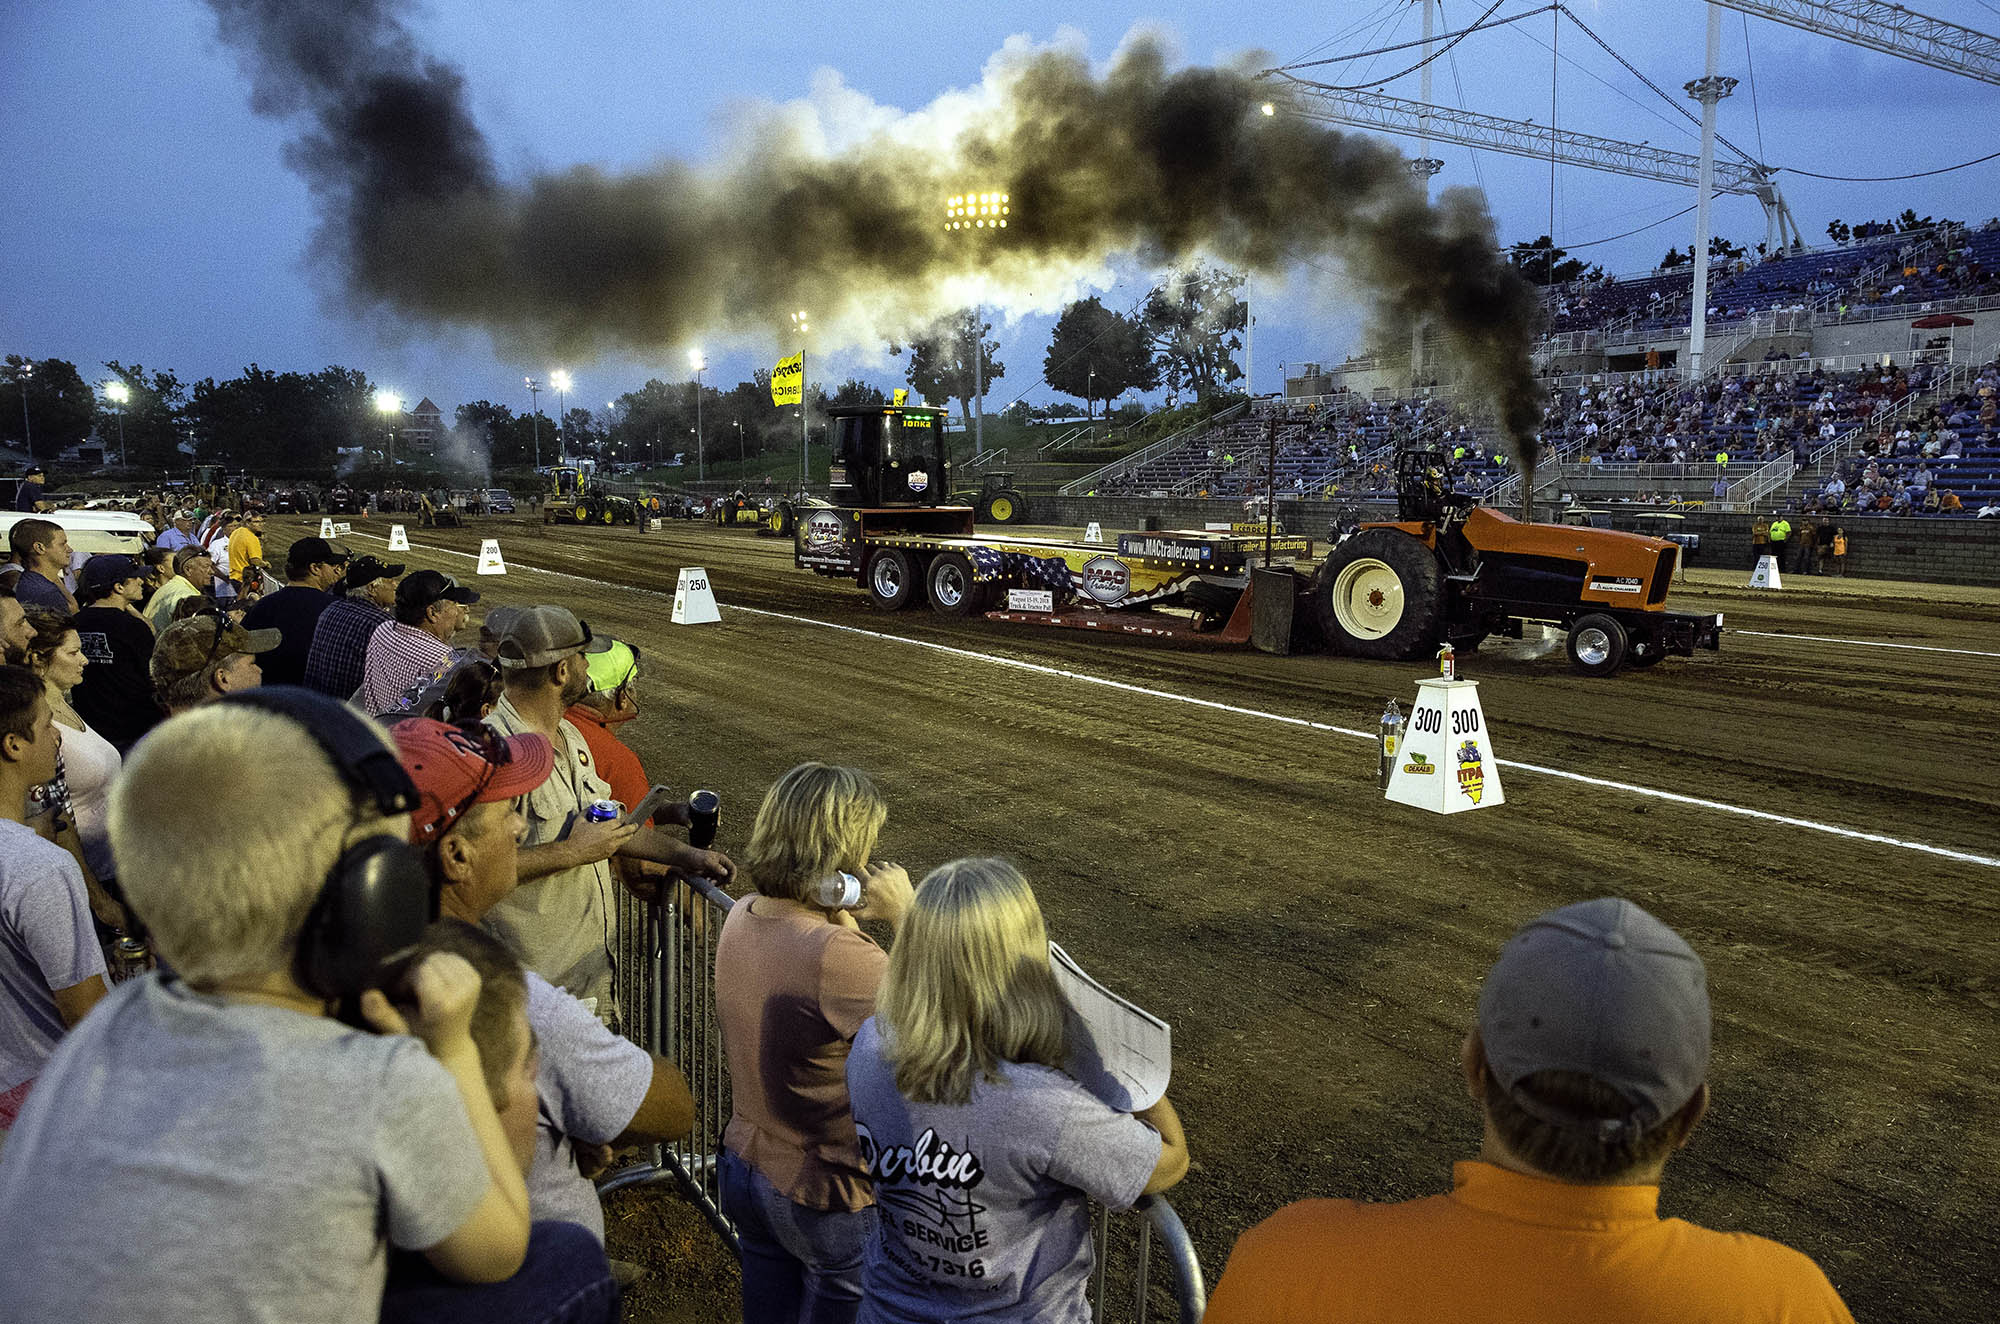 Tony Isbell of Marion, Ill., drives Empty Pockets down the track during the 9500 Pro Farm class of the 2018 Illinois State Fair Tractor Pull at the Rodeo Arena Monday, Aug. 13, 2018. The truck and tractor pull continue through Wednesday. [Ted Schurter/The State Journal-Register]